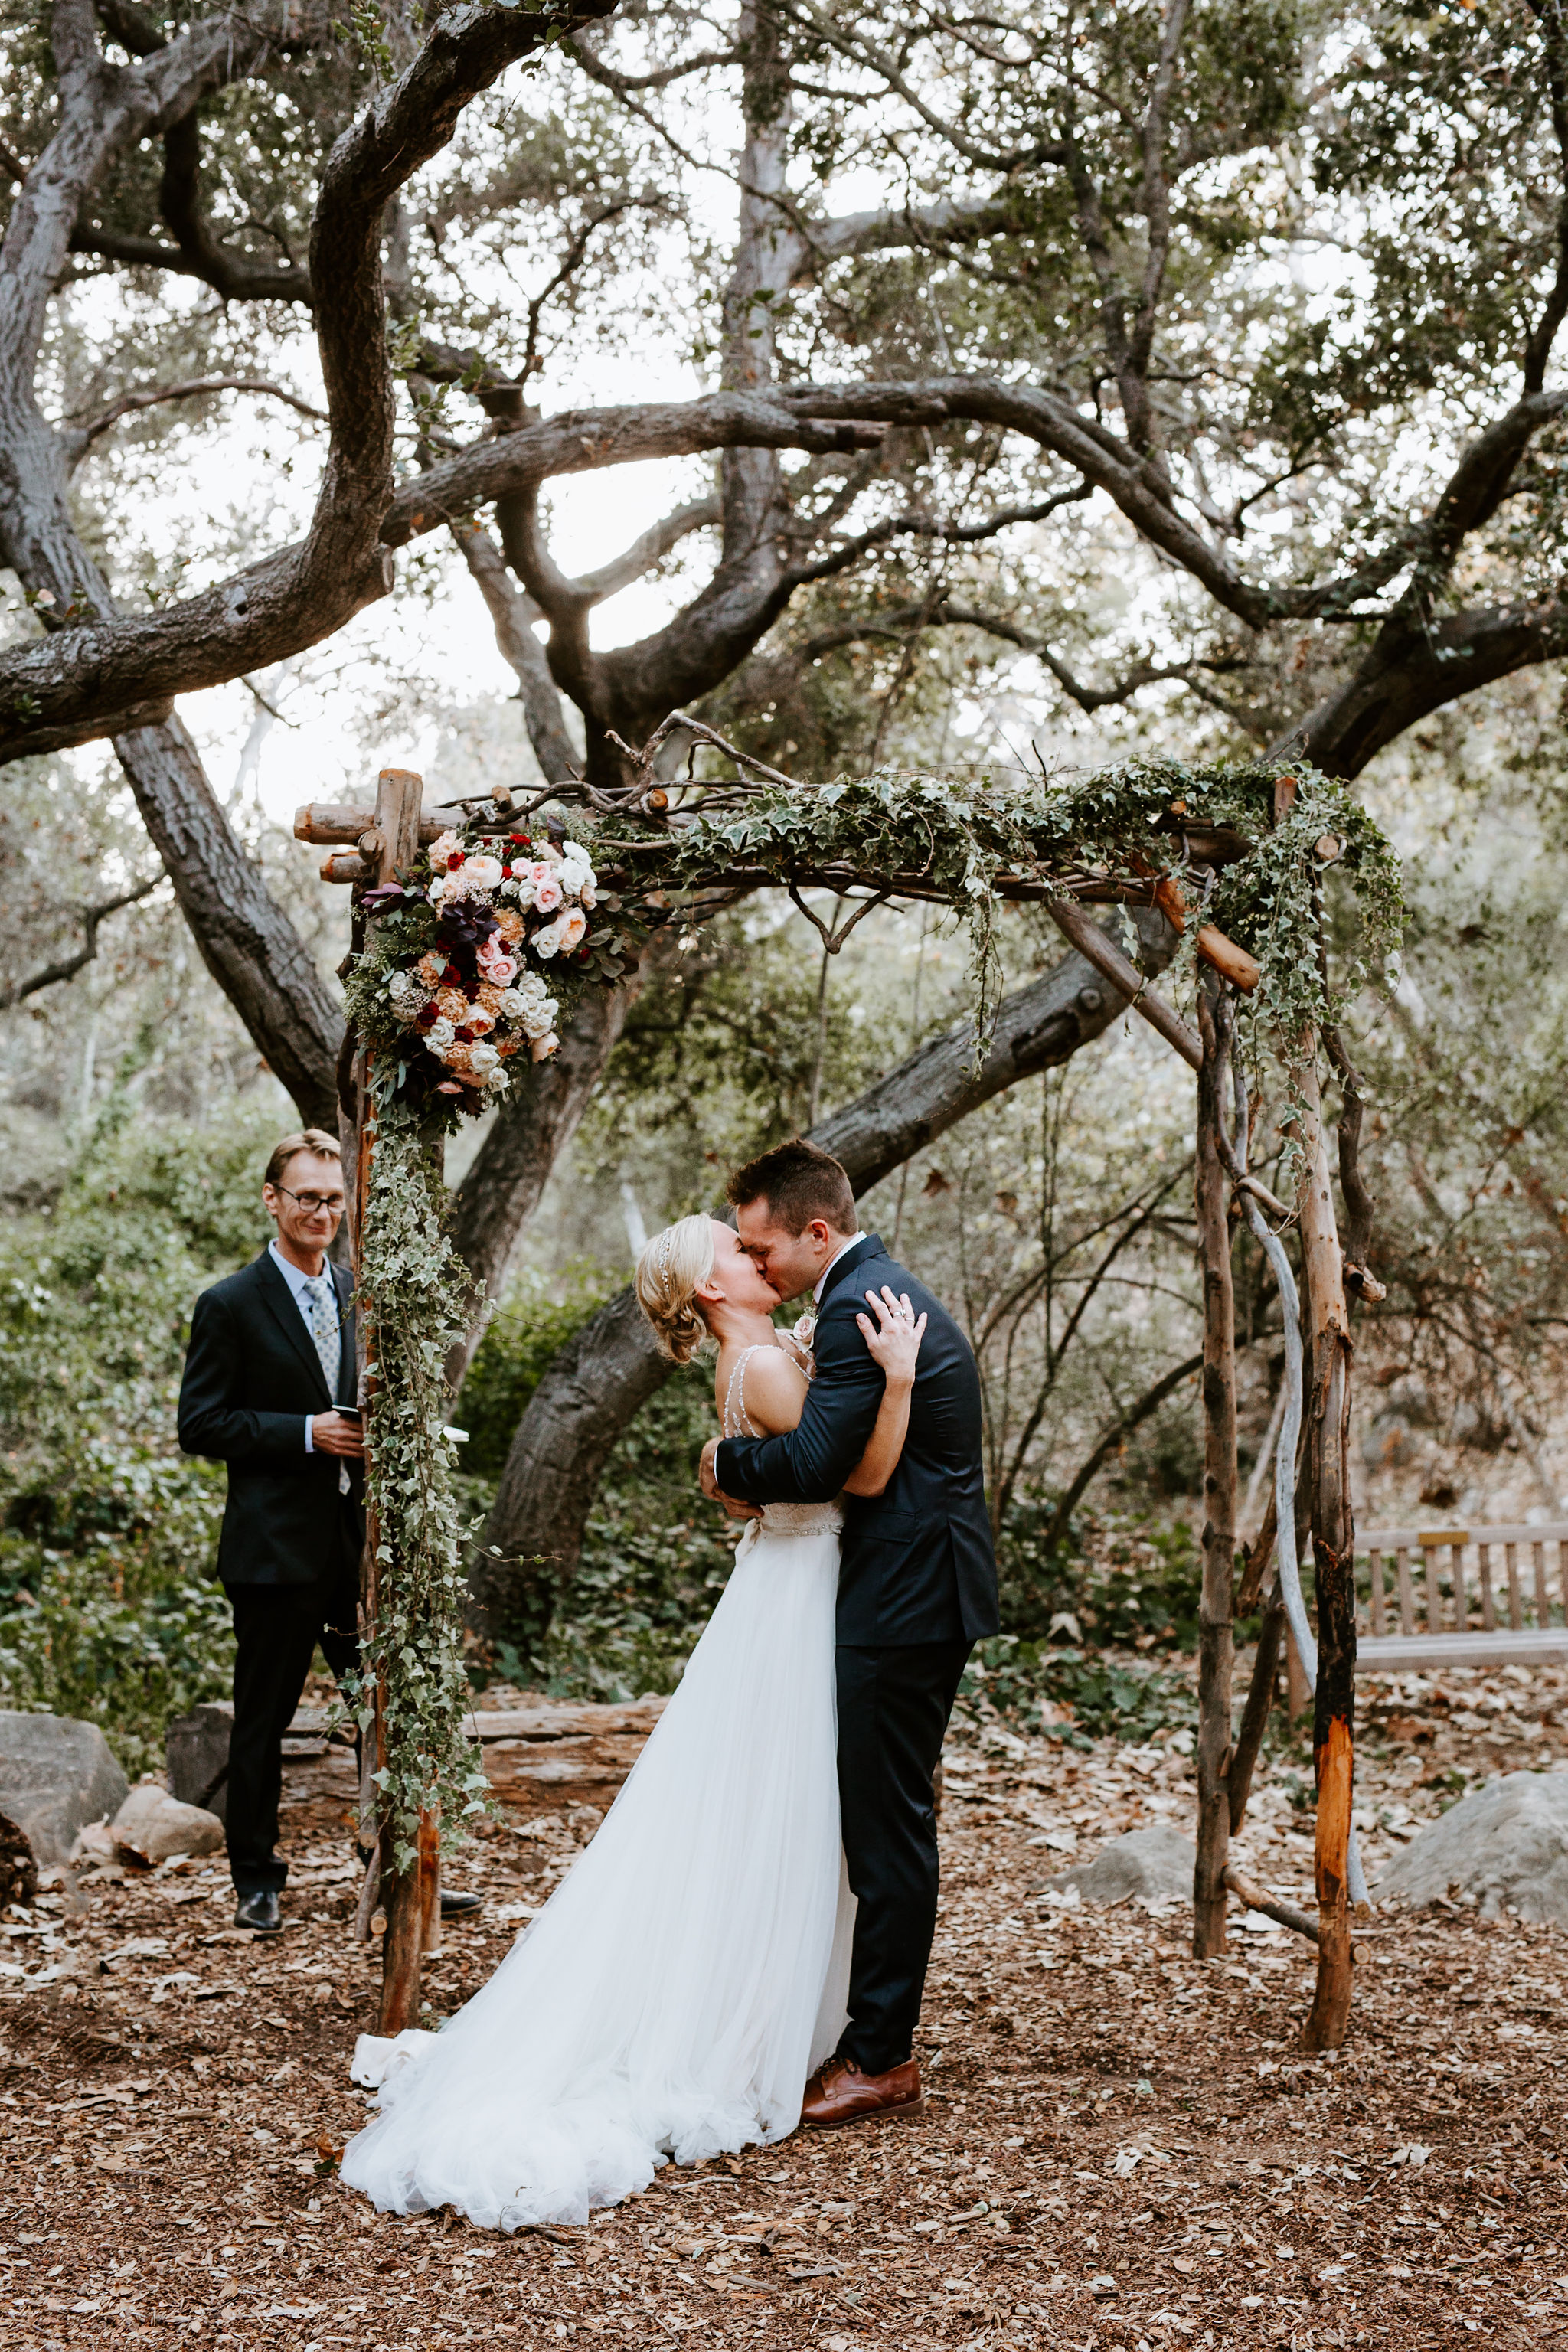 www.santabarbarawedding.com | Geoff and Lyndsi Photography | Santa Barbara Museum of Natural History | Jamie Mangone of LuJane Events | Topa Flora | Bride and Groom First Kiss